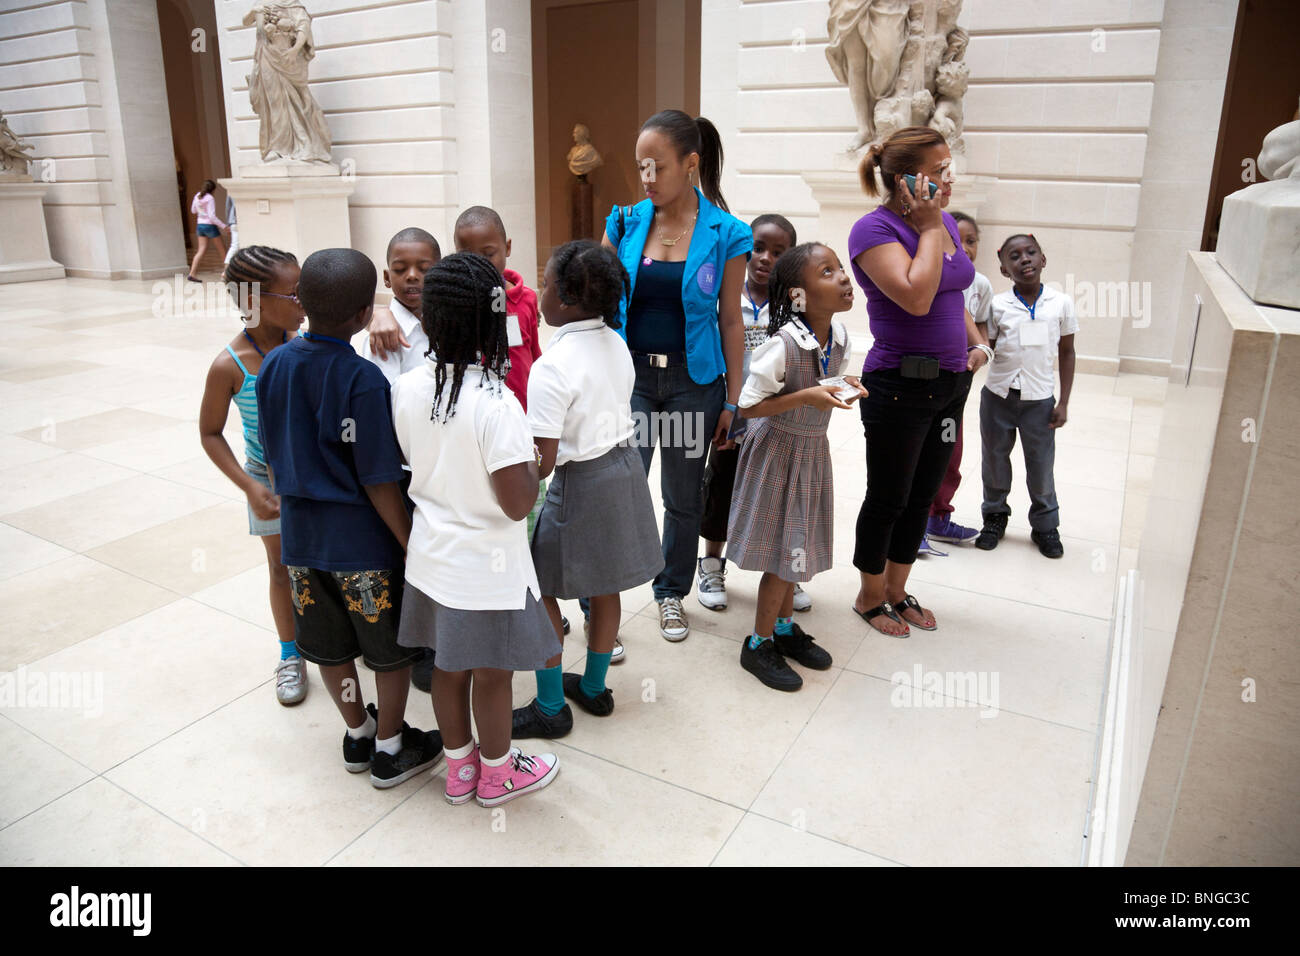 group of small black schoolchildren in the Petrie Court of the Metropolitan Museum of Art on a summer outing with - Stock Image